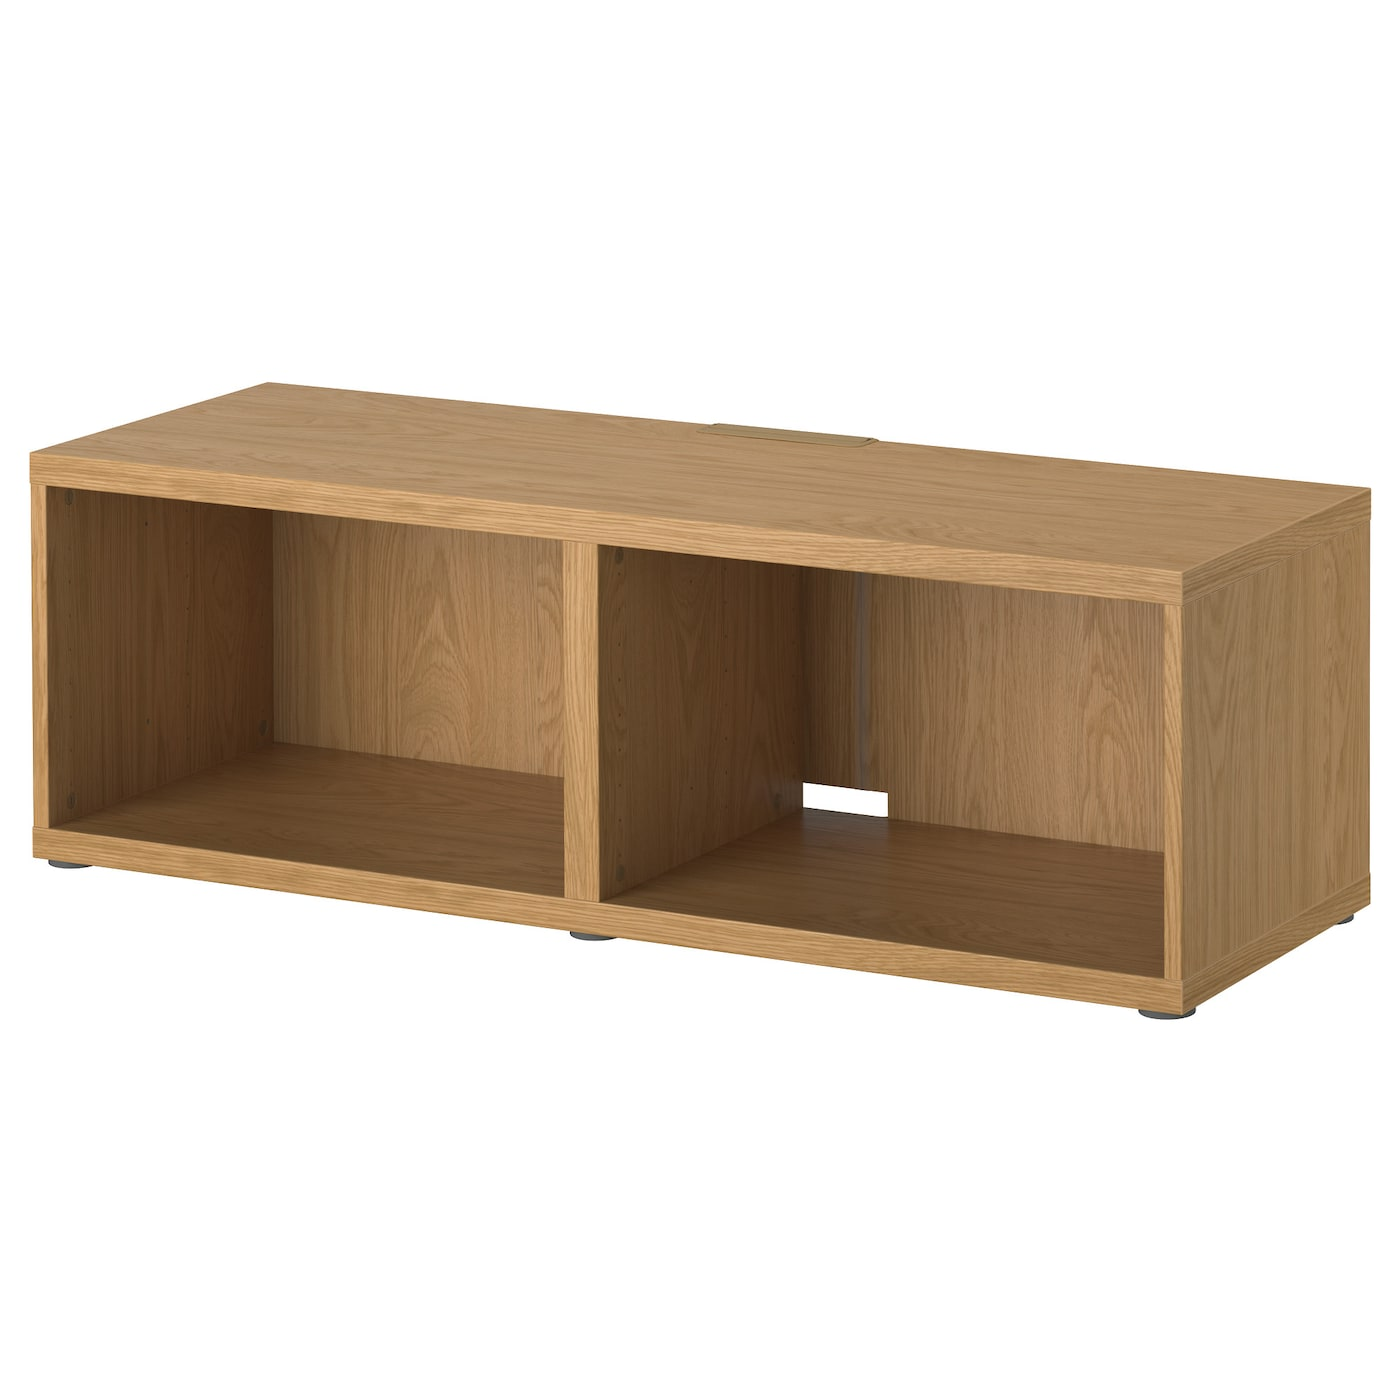 Ikea BestÅ Tv Bench If You Want To Organise Inside Can Complement With Interior